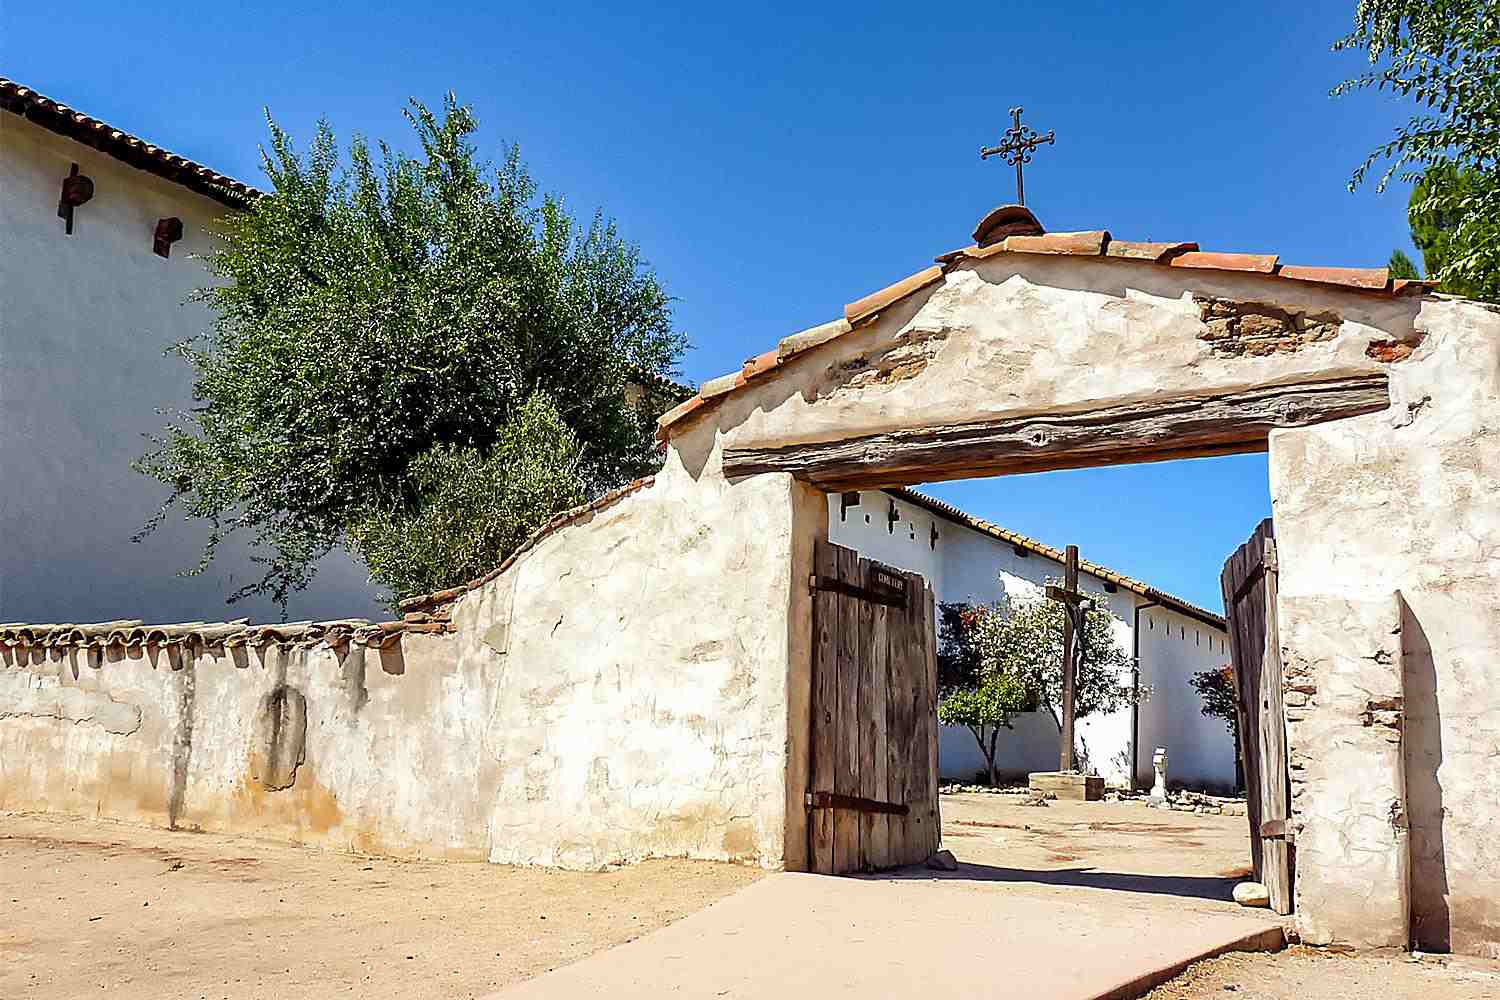 Cemetery at Mission San Miguel